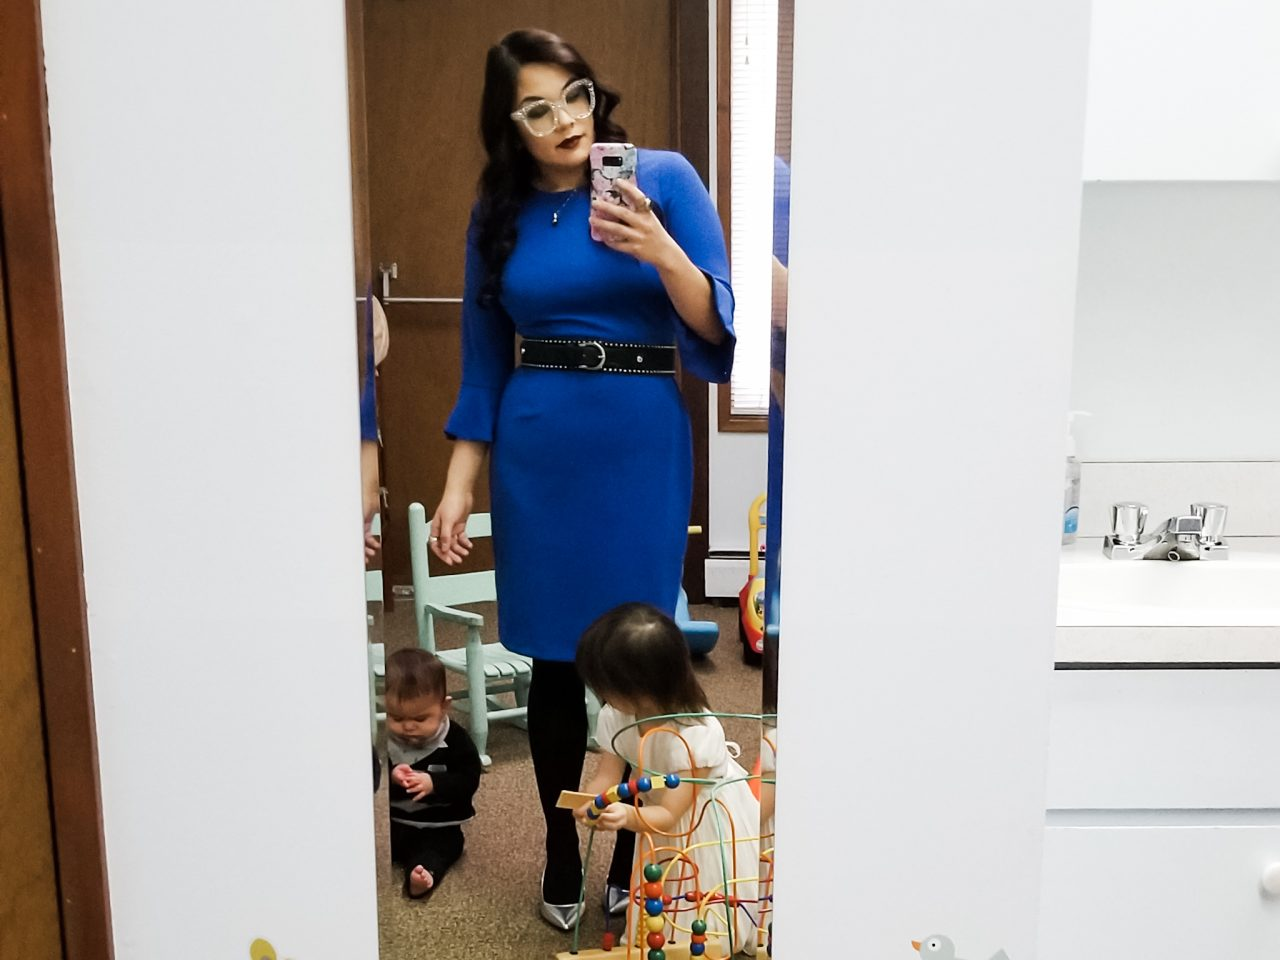 Rebecca Jones-Howe in a church playroom with her children.